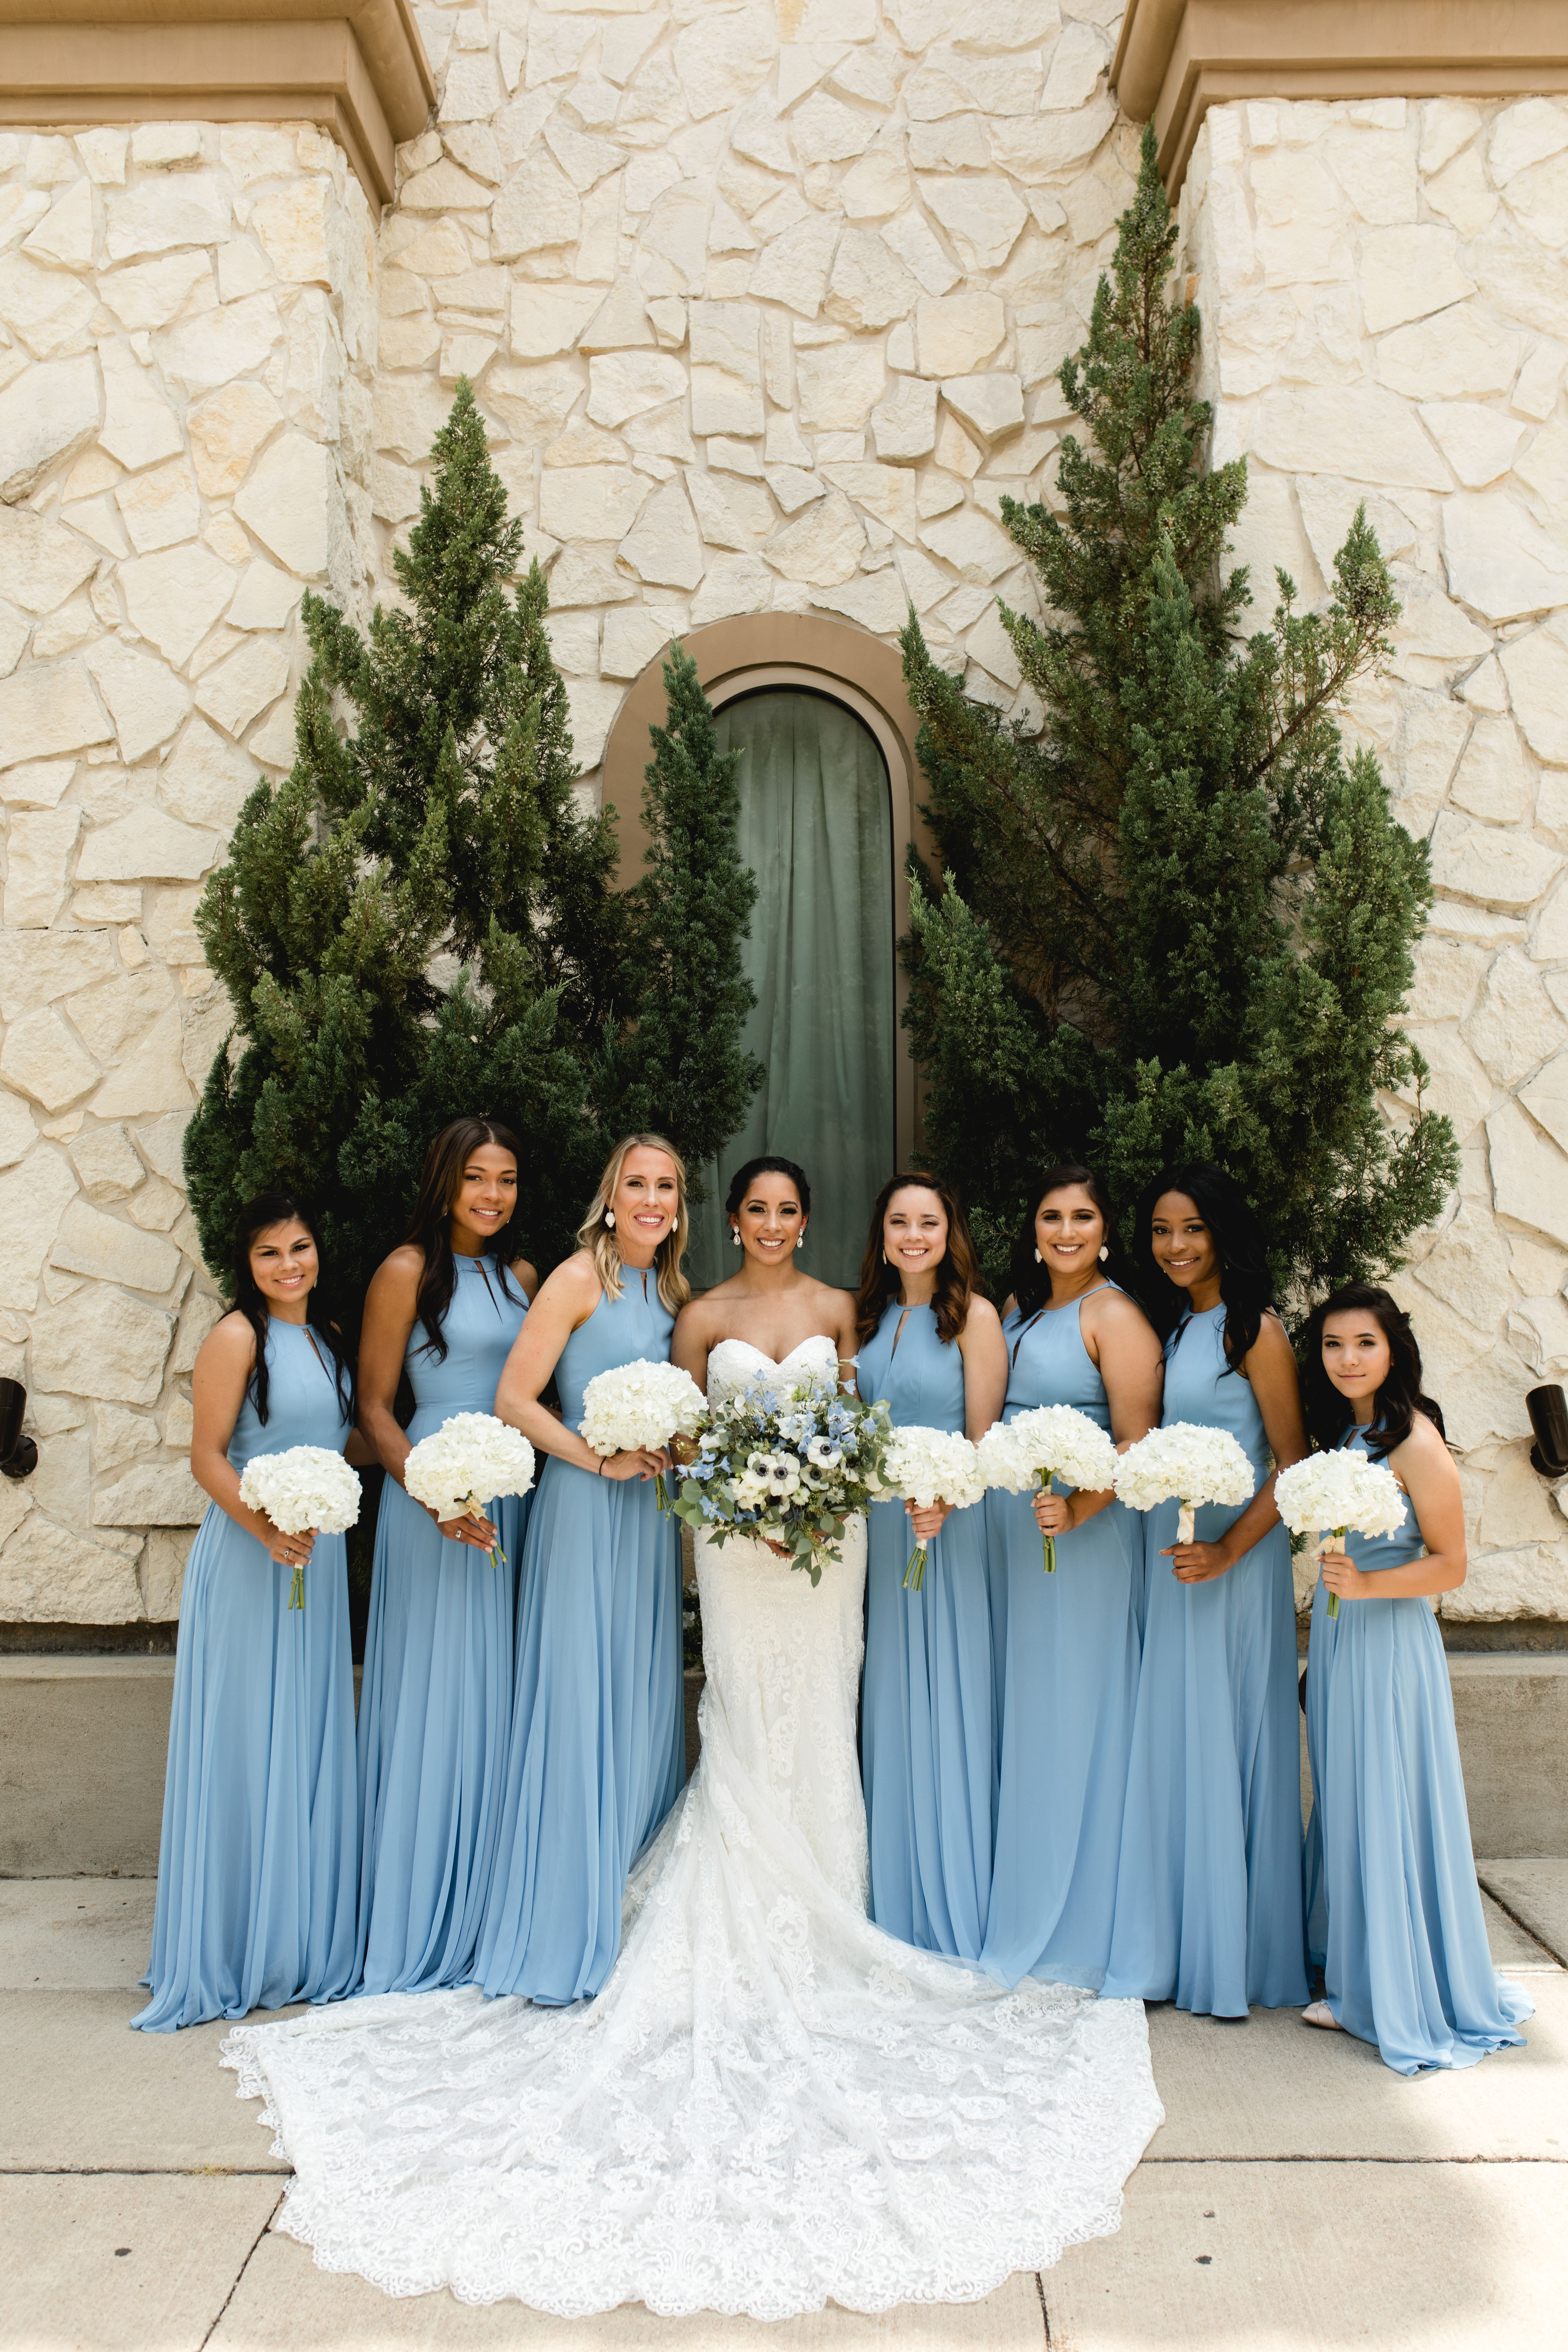 Bridesmaids In Blue At Piazza In The Village Christy Archibald Photography Dark Blue Wedding Blue Winter Wedding Blue Themed Wedding